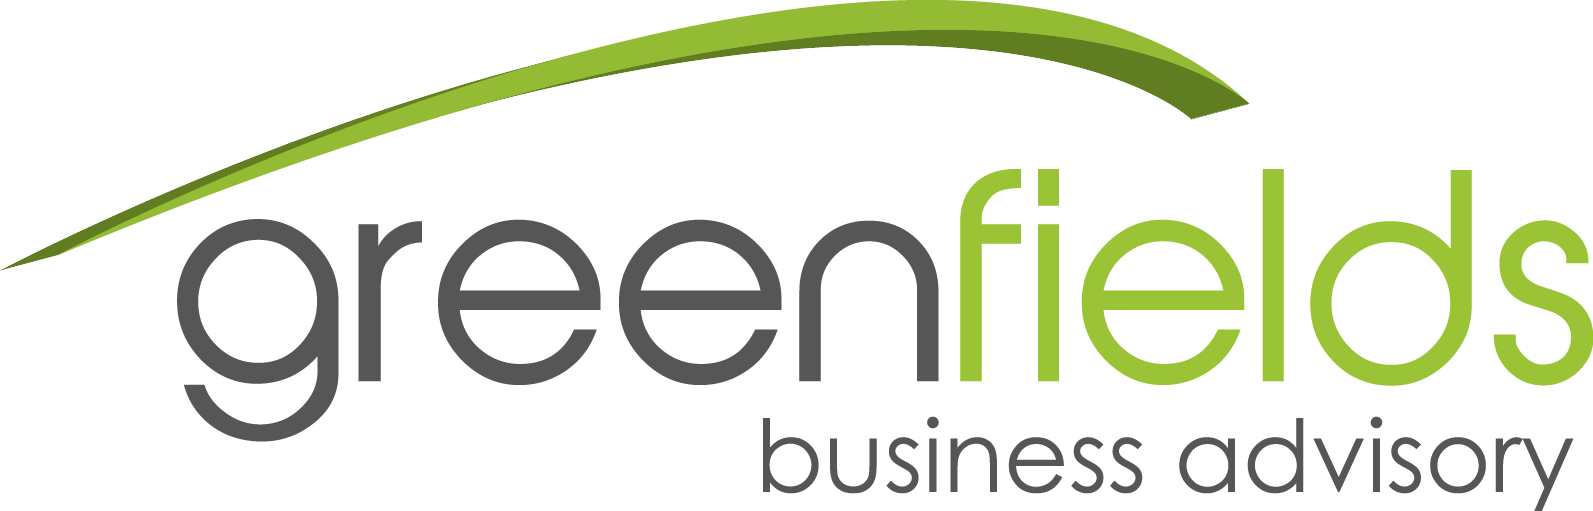 Greenfields Business Advisory